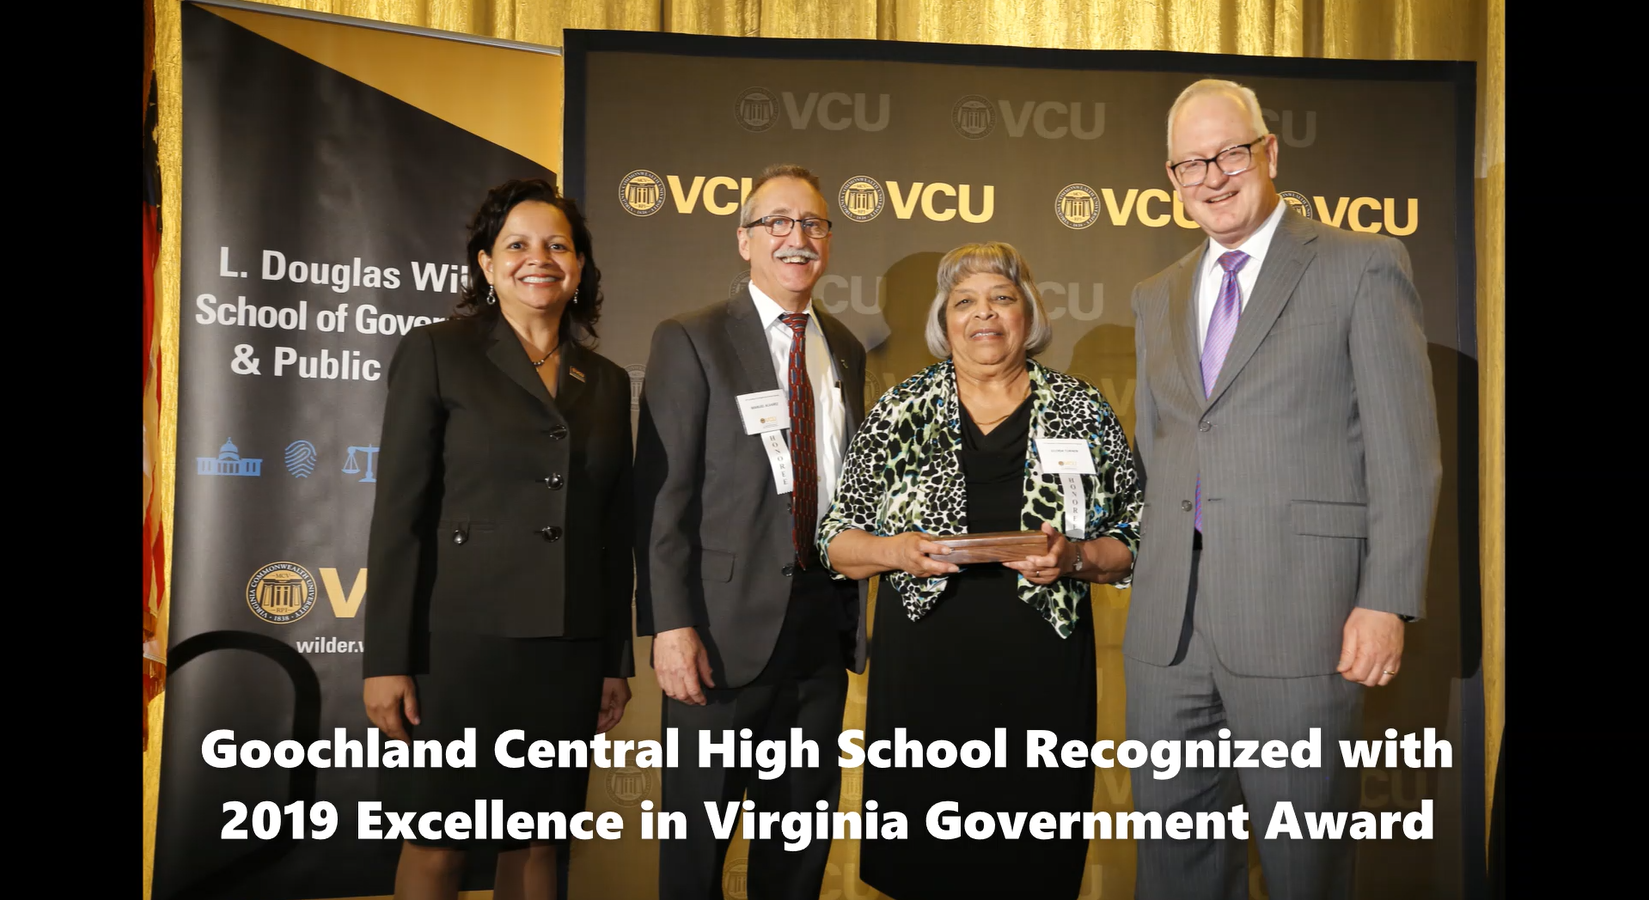 EVGA Community Enhancement Award - Goochland Central High School